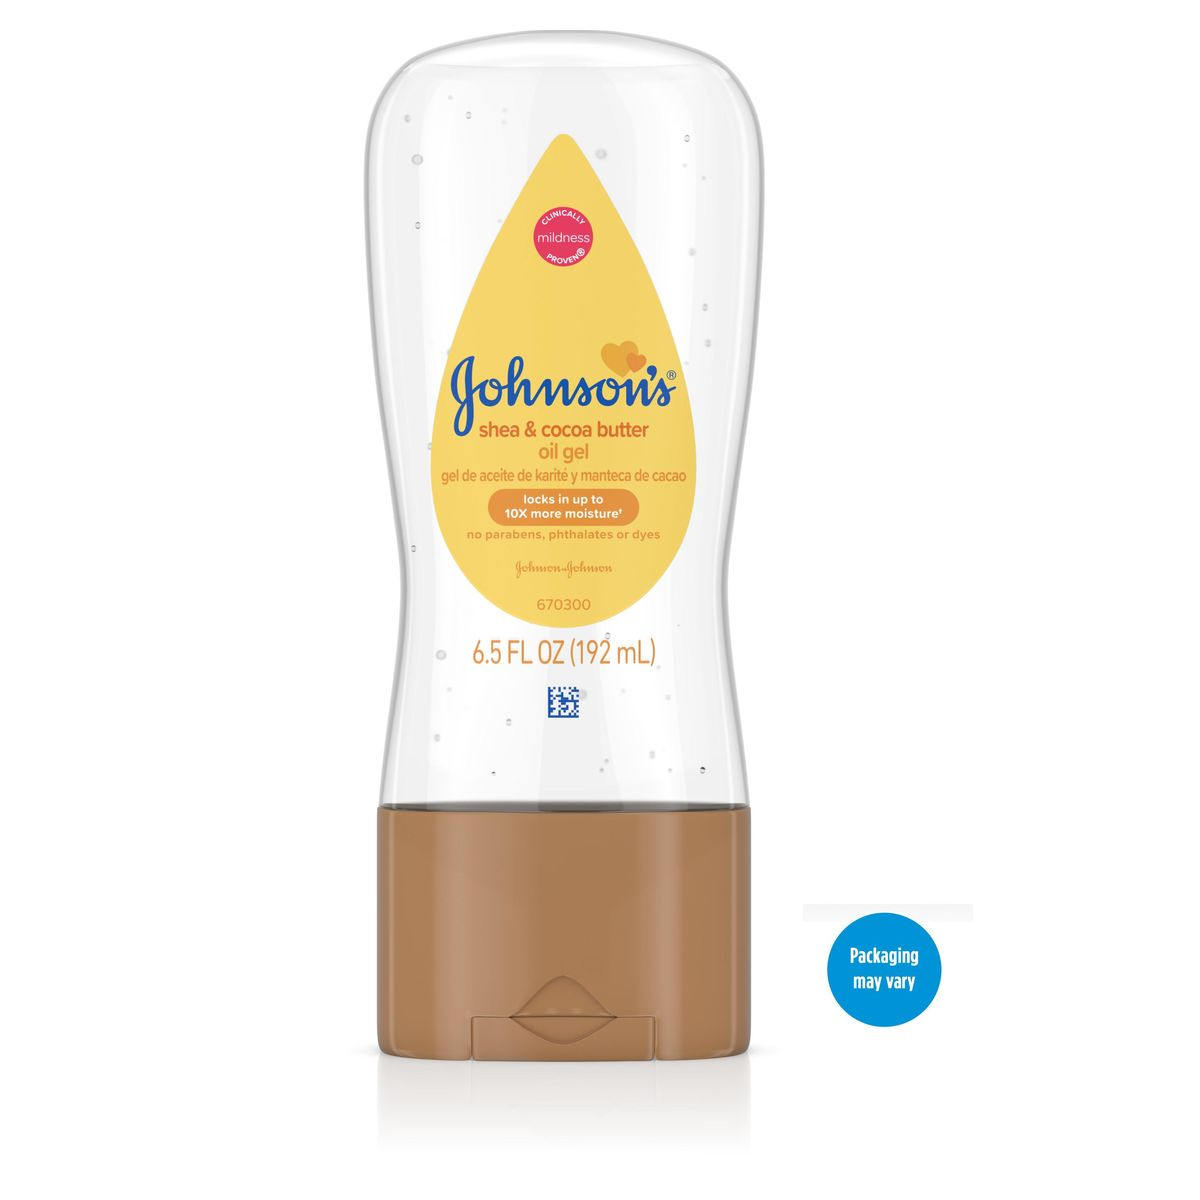 johnson's baby oil gel with shea and cocoa butter